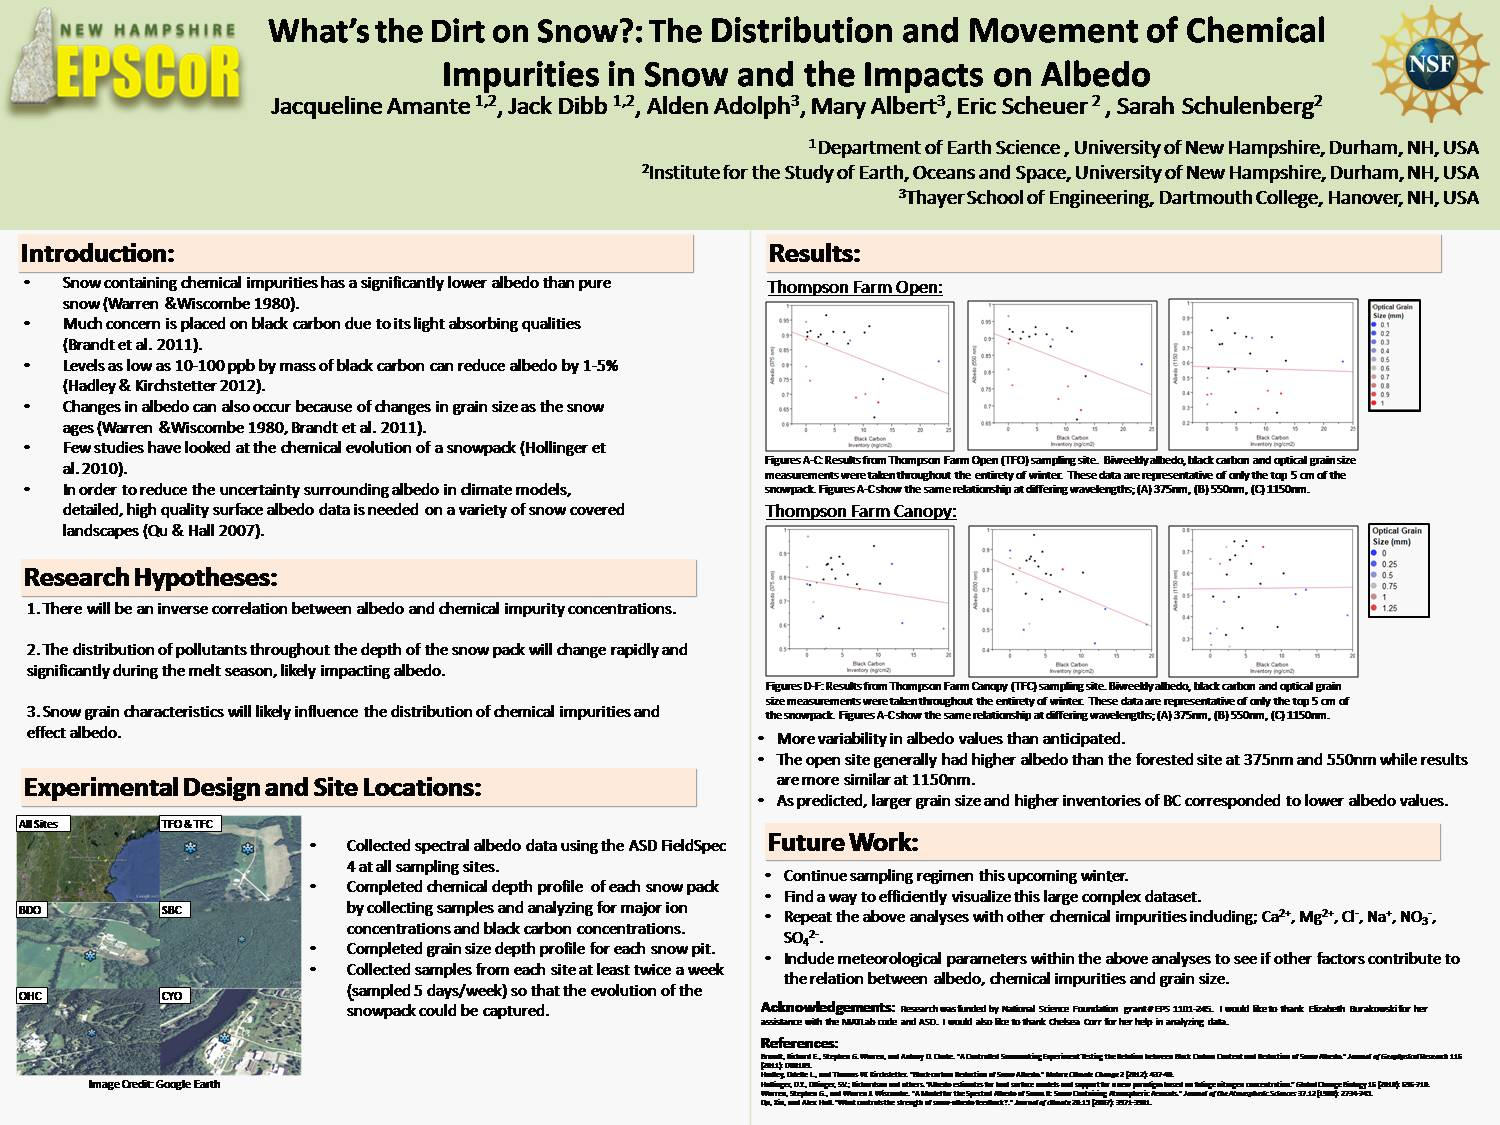 What'S The Dirt On Snow?: The Distribution And Movement Of Chemical Impurities In Snow And The Impacts On Albedo by JackiA